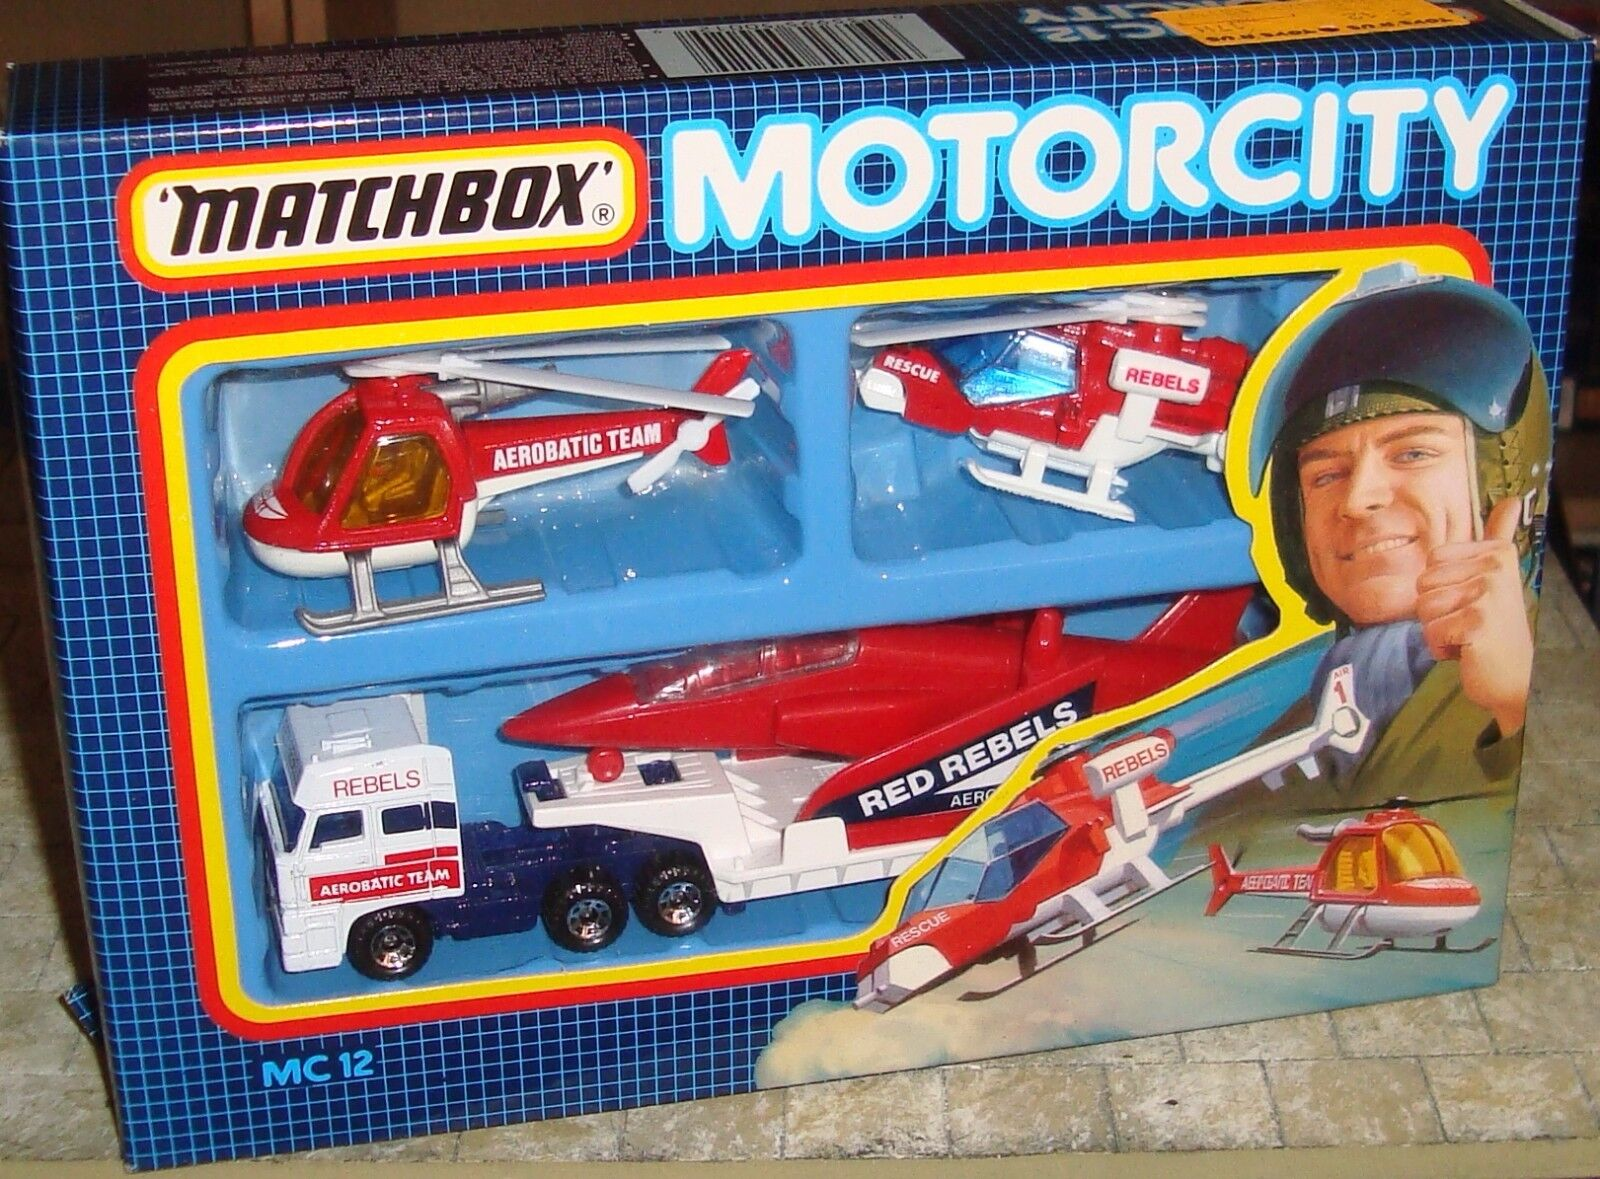 MATCHBOX - MOTORCITY - RED REBELS PLANE TRANSPORTER & HELICOPTERS SET - MC 12